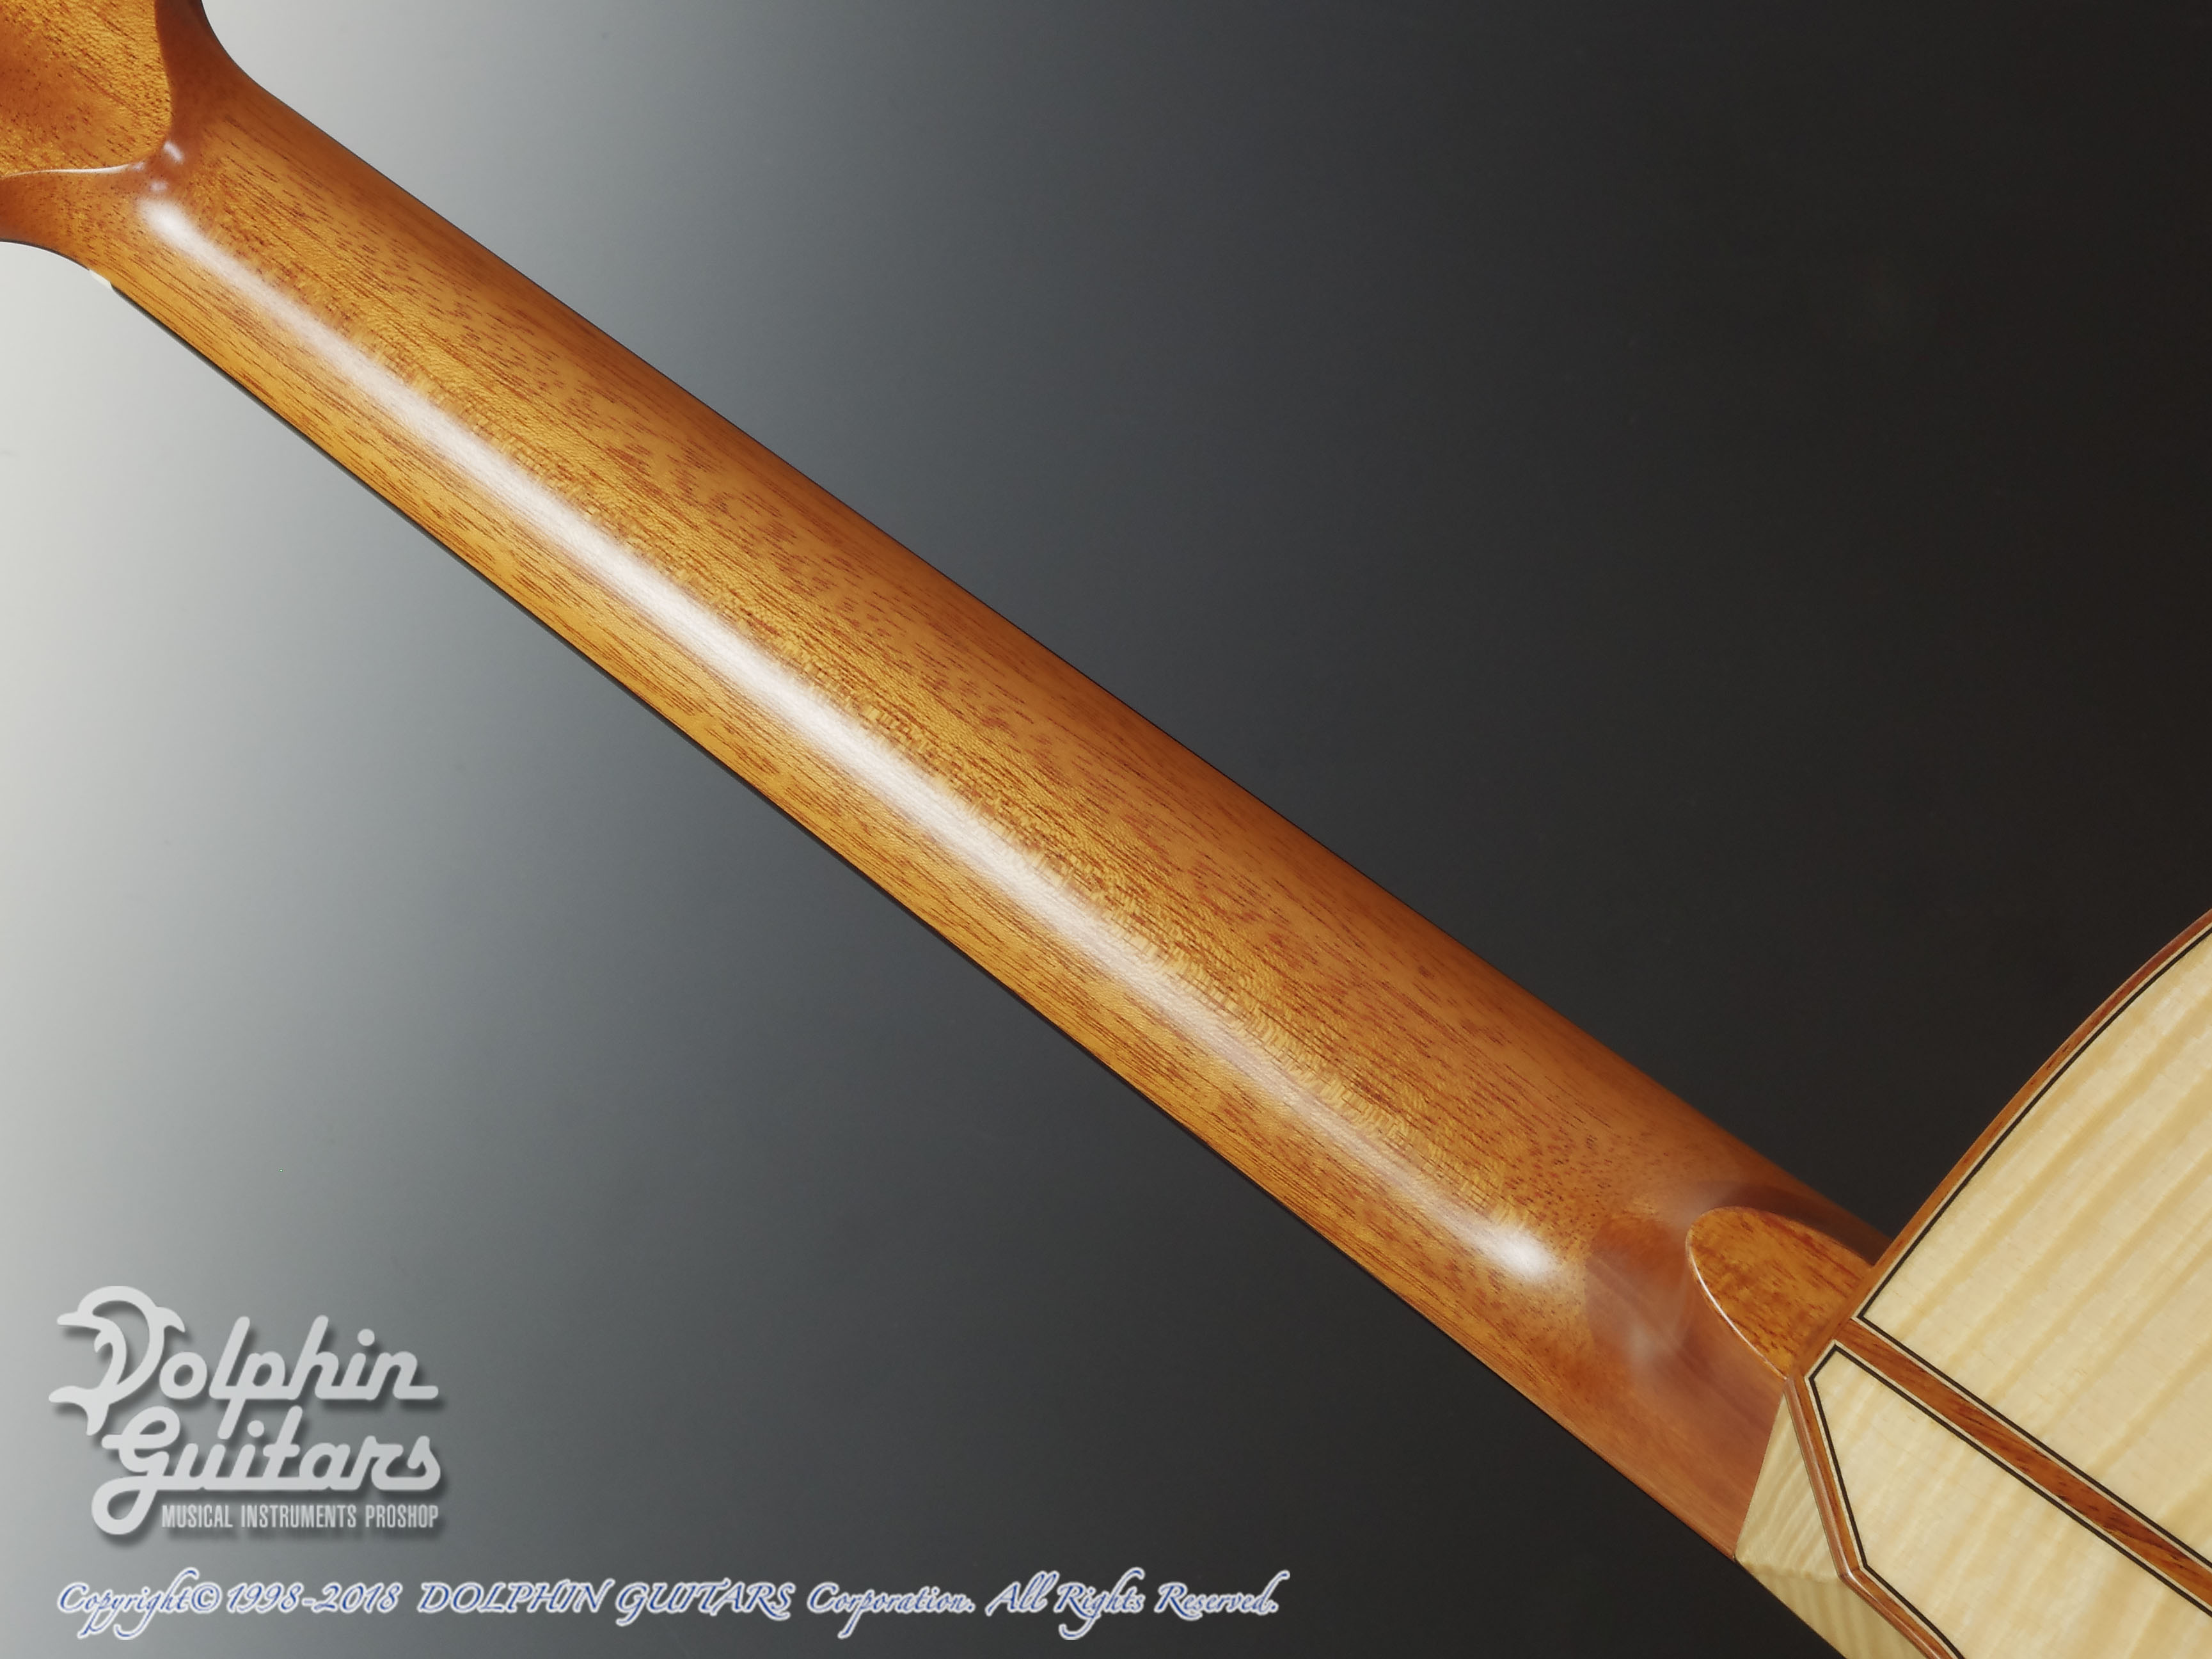 ASTURIAS: Grand Solo Premio Premio/S Maple LTD (Curly Maple) (5)